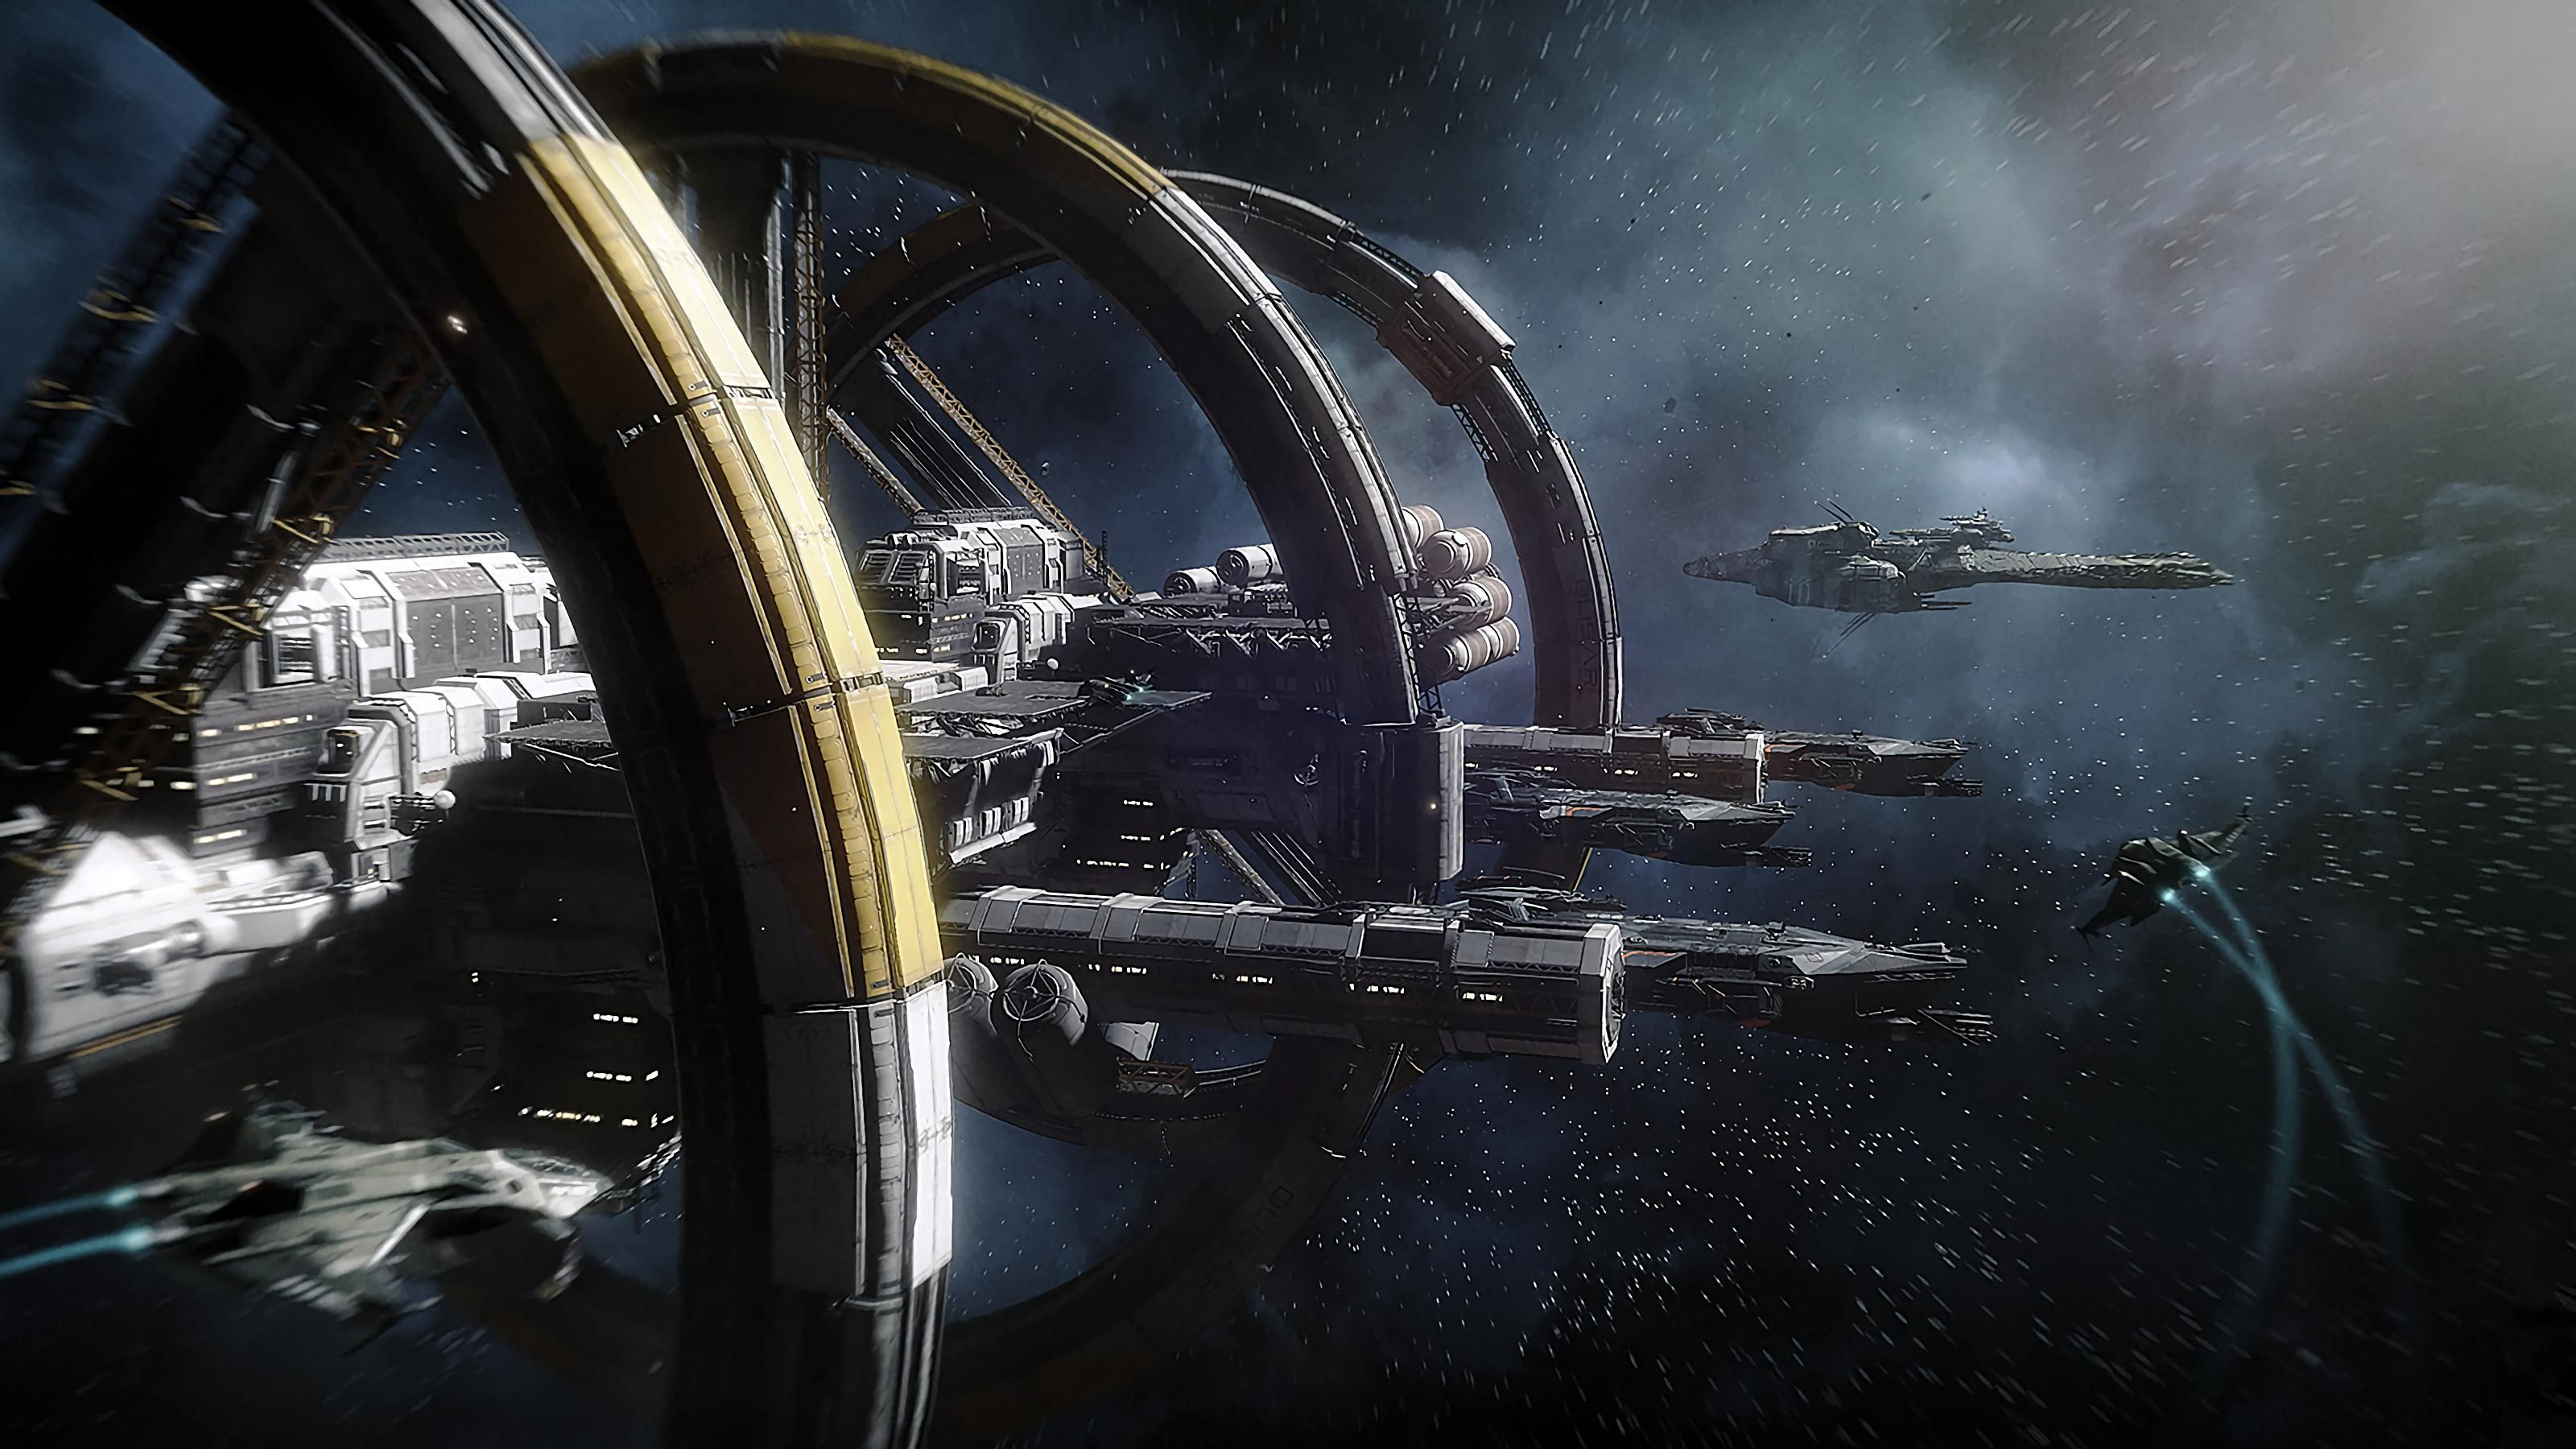 Pin By Le Moine On Concept Space Vehicles Star Citizen Stars Cinematic Trailer